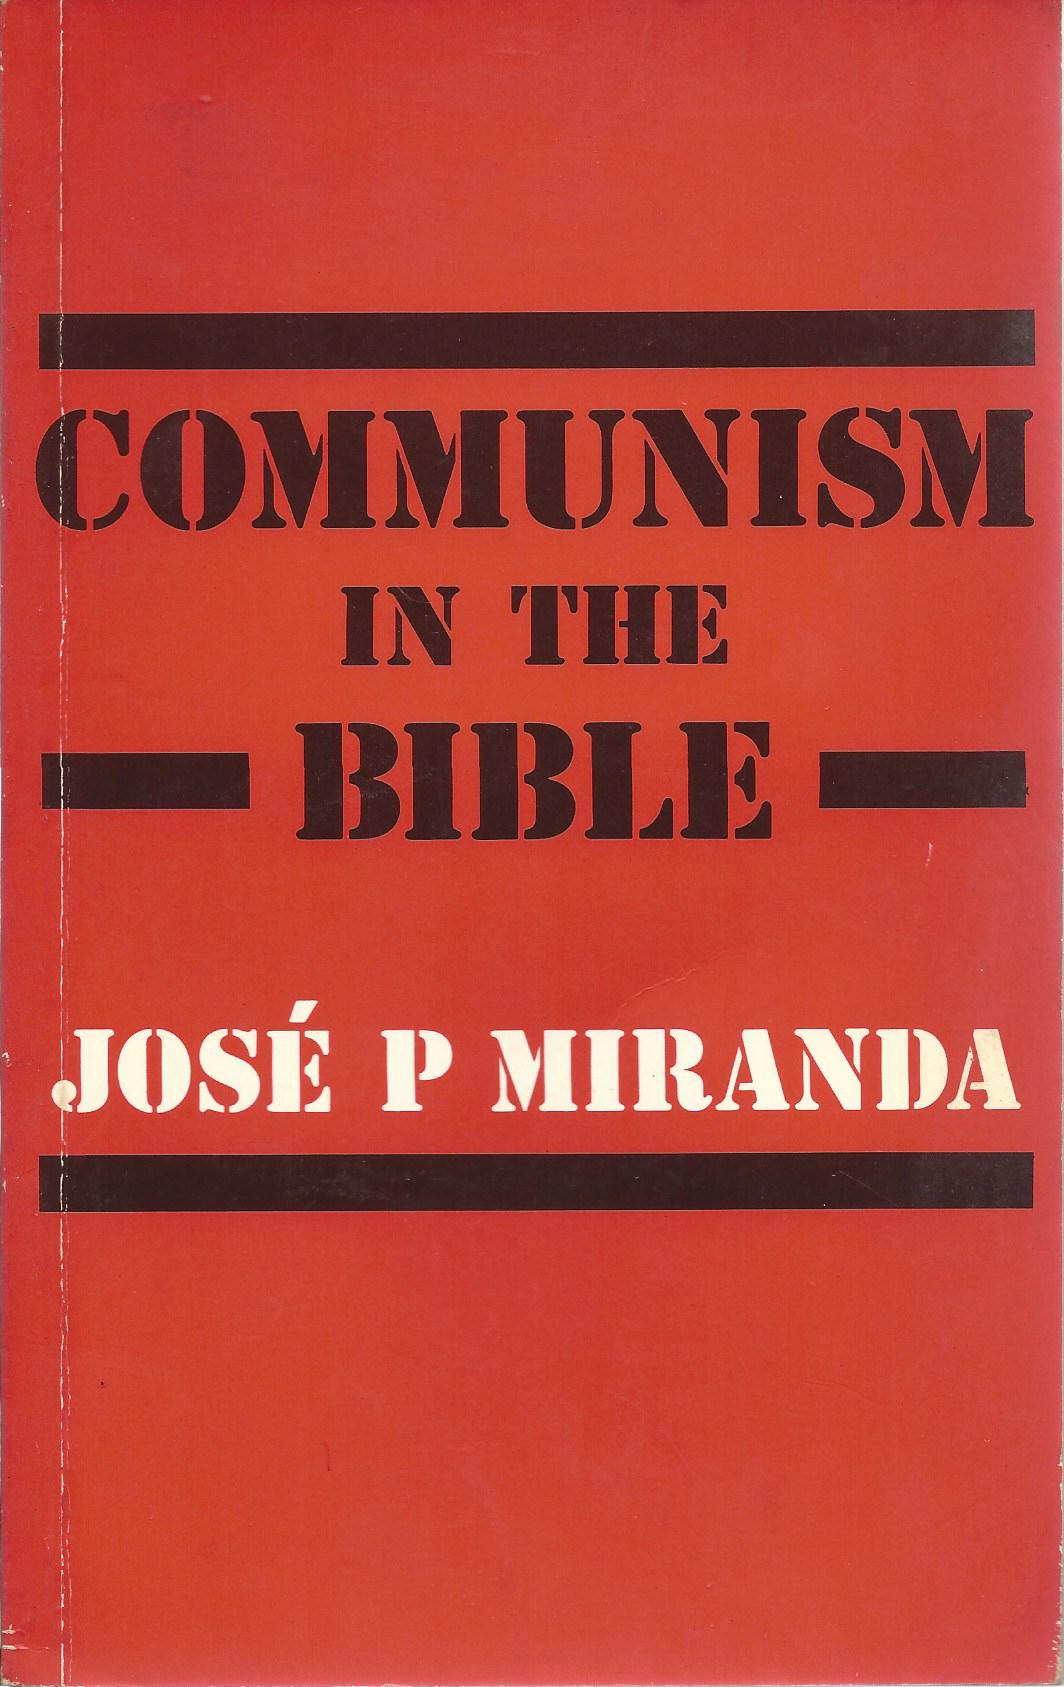 communism-in-the-bible-primera-edici%c2%a2n-scm-press-1982